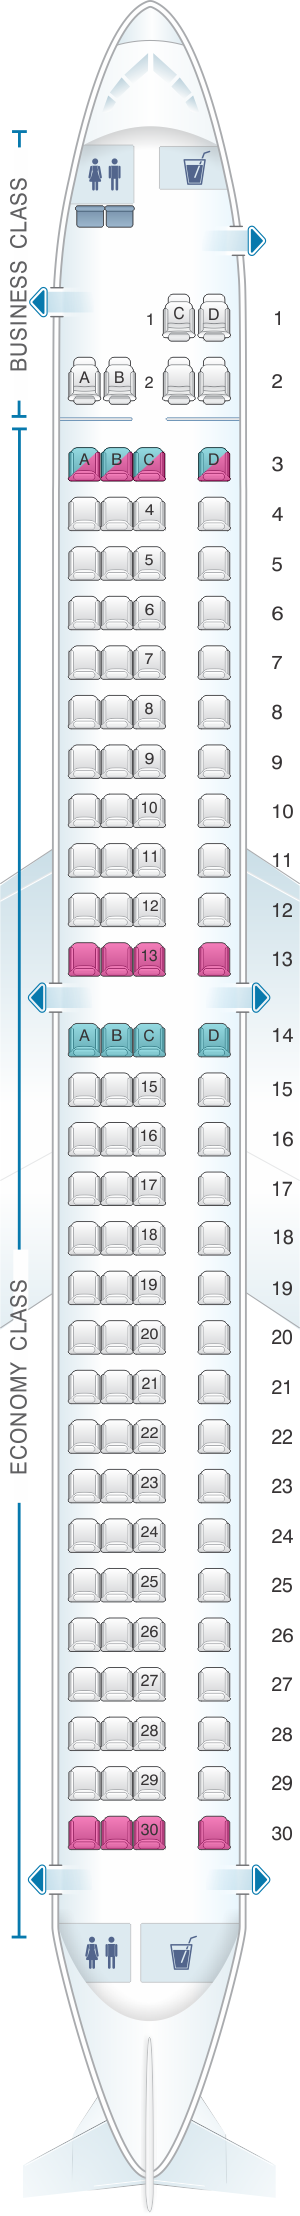 Seat map for TAP Air Portugal Embraer E195